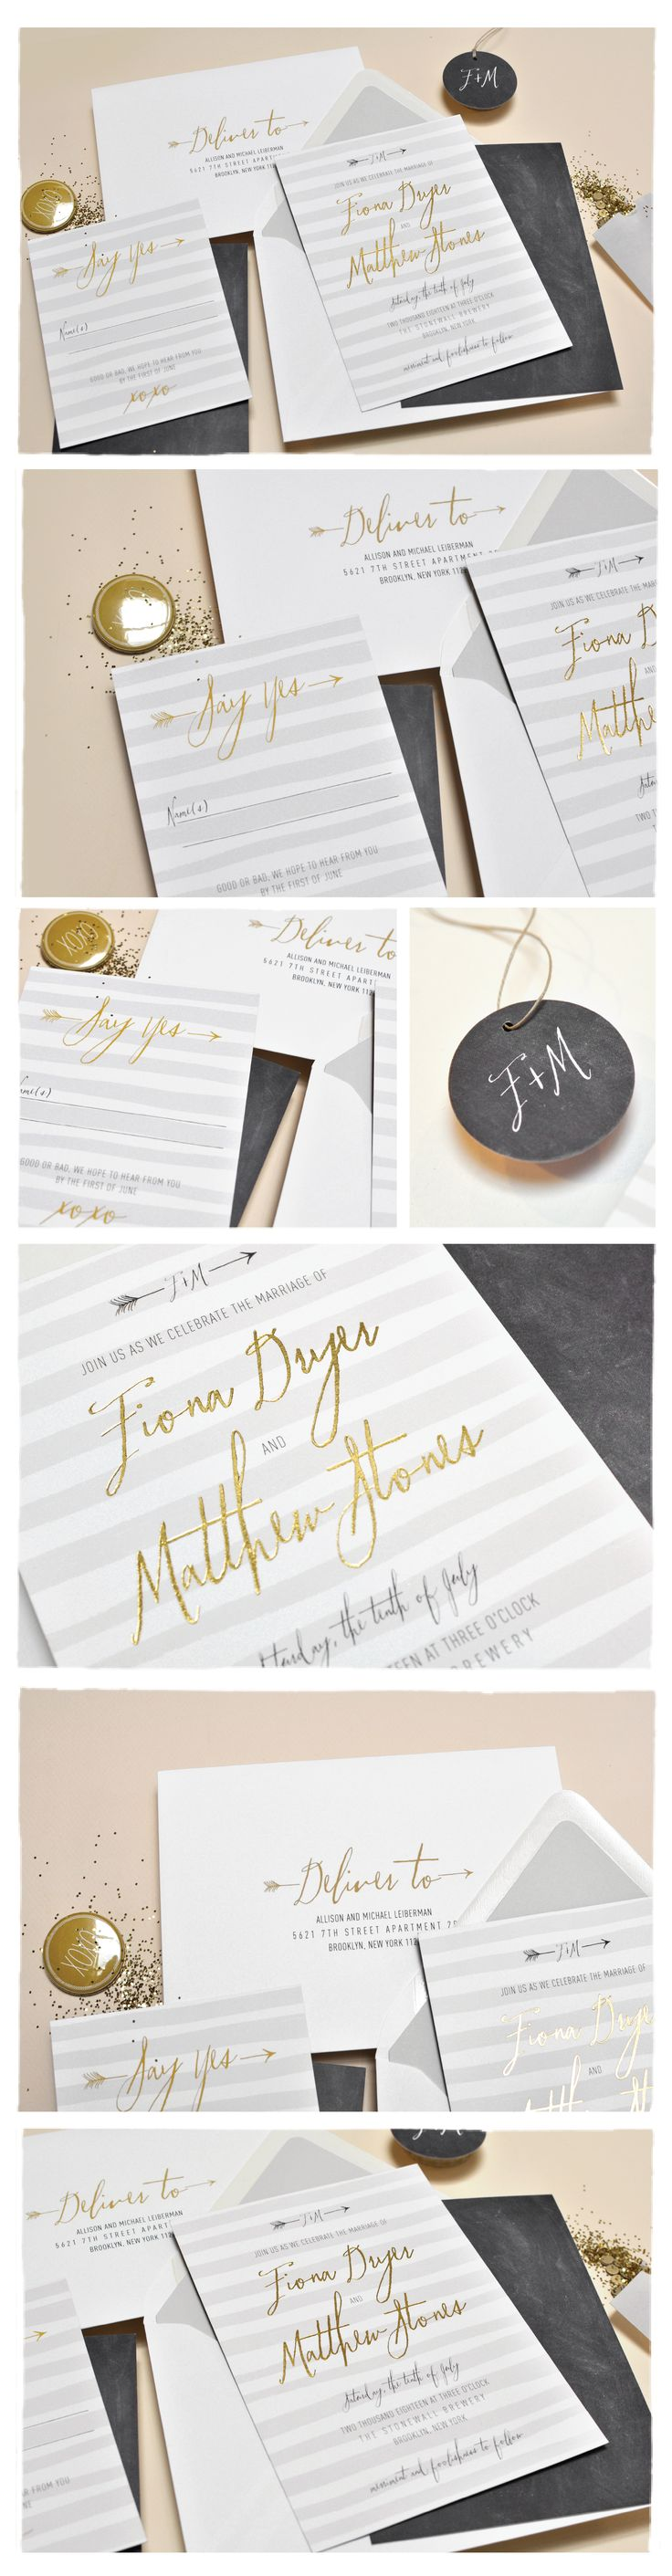 24 Best Wedding Invitations Images On Pinterest Wedding Ideas